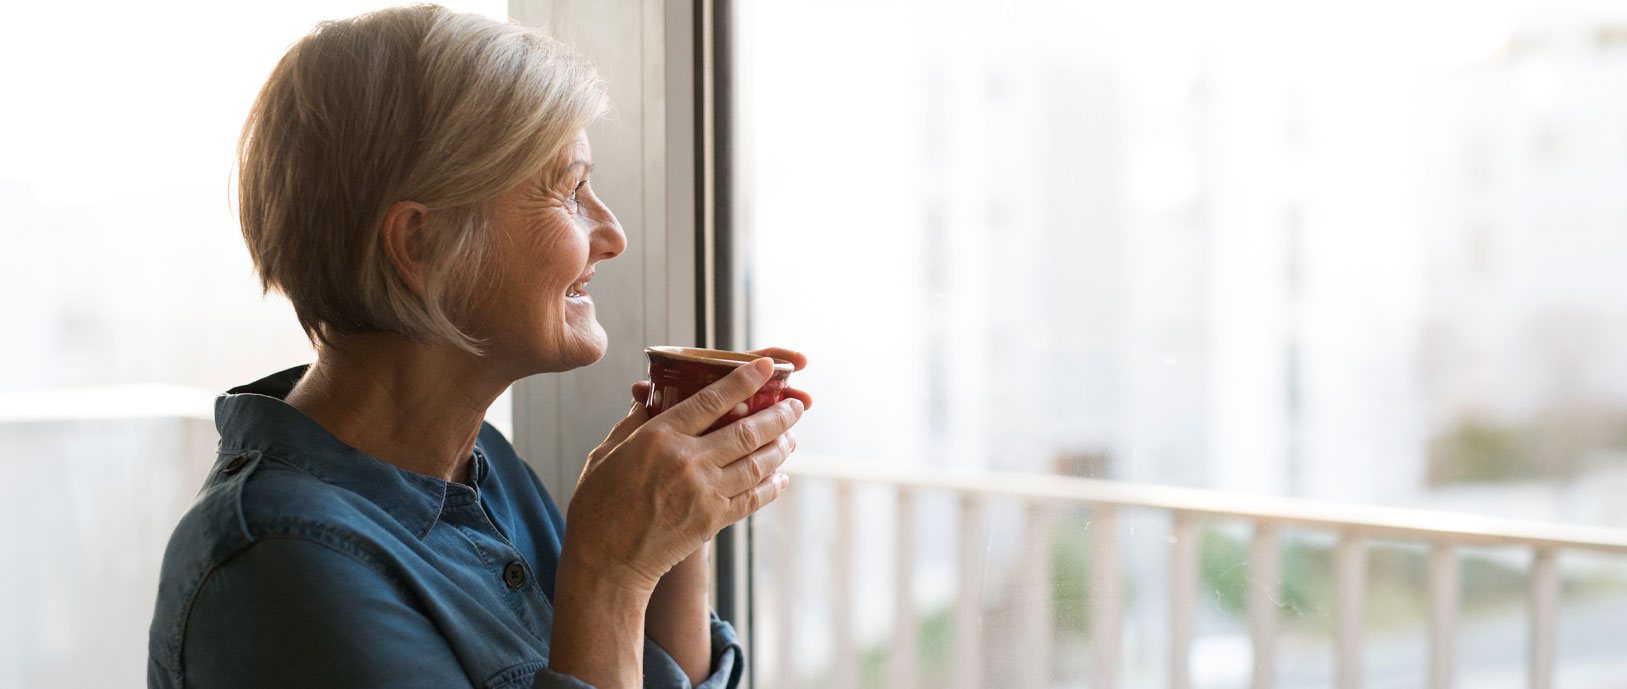 Photo of an elderly woman staring out the window smiling and drinking out of a coffee mug